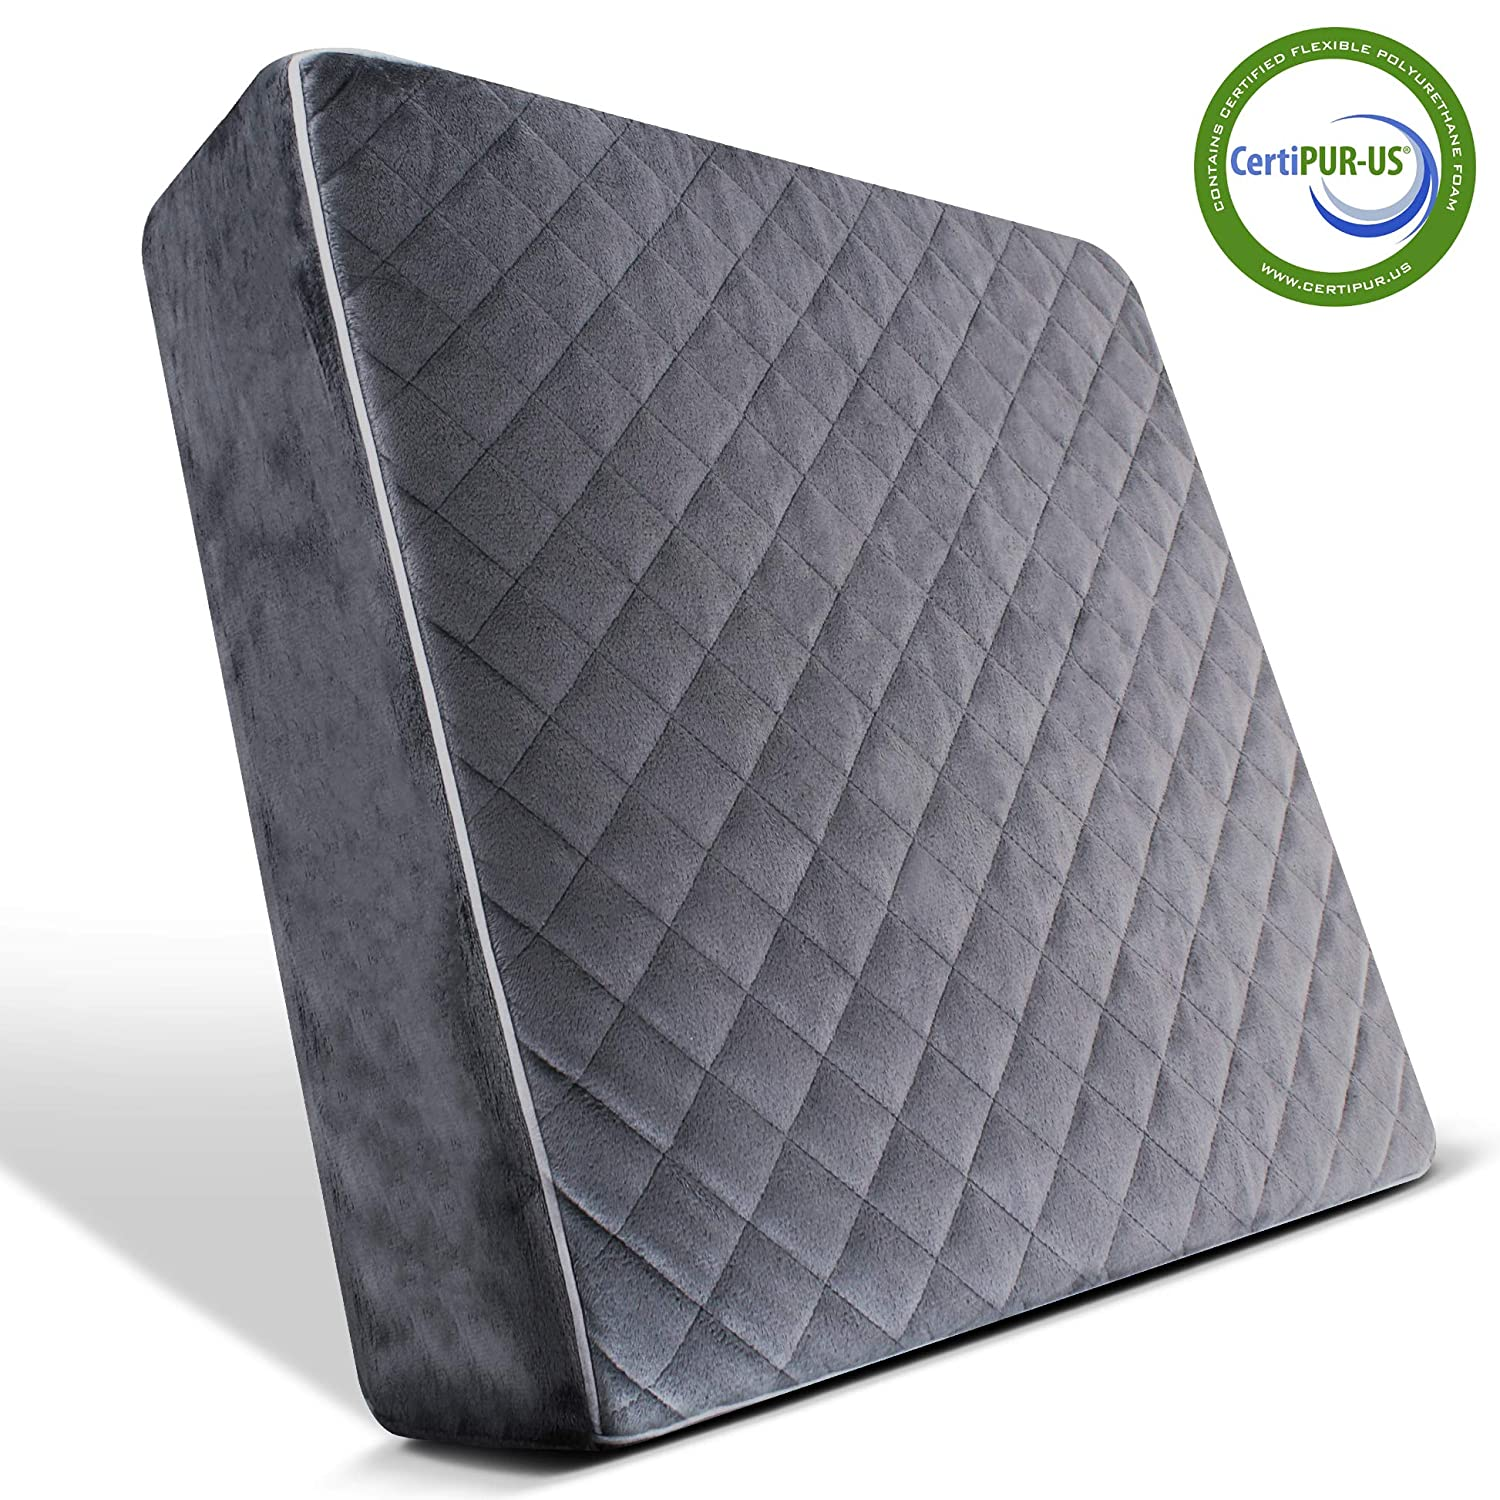 Comfortanza Memory Foam Chair Seat Cushion - 18x18x3 Square Thick Foam Pads for Wooden Kitchen Dining Chairs, Office & Car Seat - Booster Cushion - Comfort & Back Pain Relief - Dark Gray